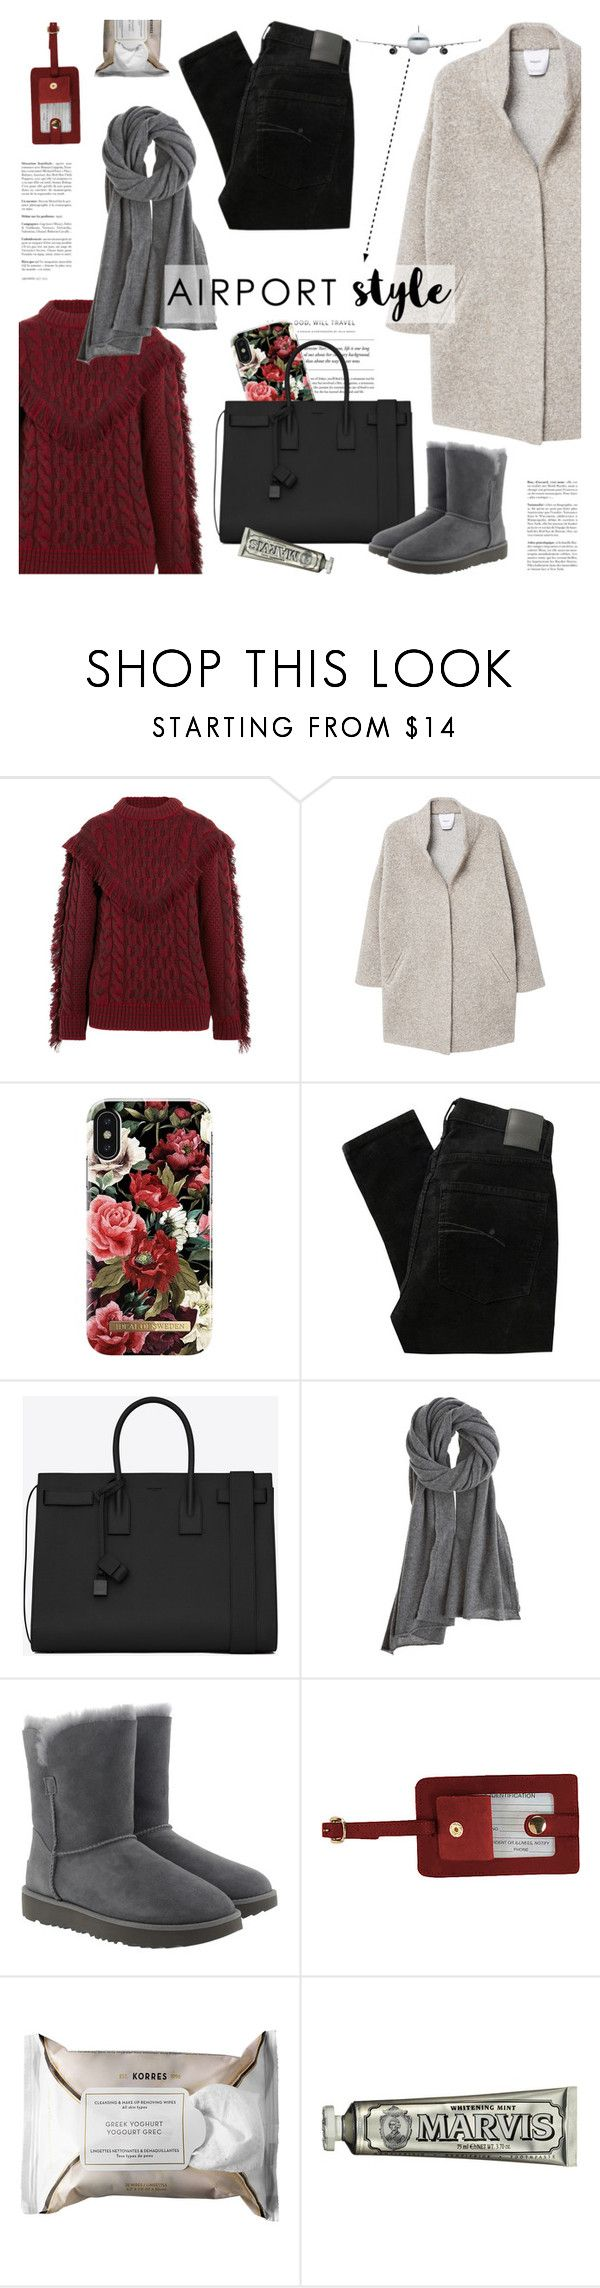 """wanderlust wonderful: airport style"" by jesuisunlapin ❤ liked on Polyvore featuring Alanui, MANGO, iDeal of Sweden, Nobody Denim, Yves Saint Laurent, Calypso St. Barth, UGG, Royce Leather, Korres and C.O. Bigelow"